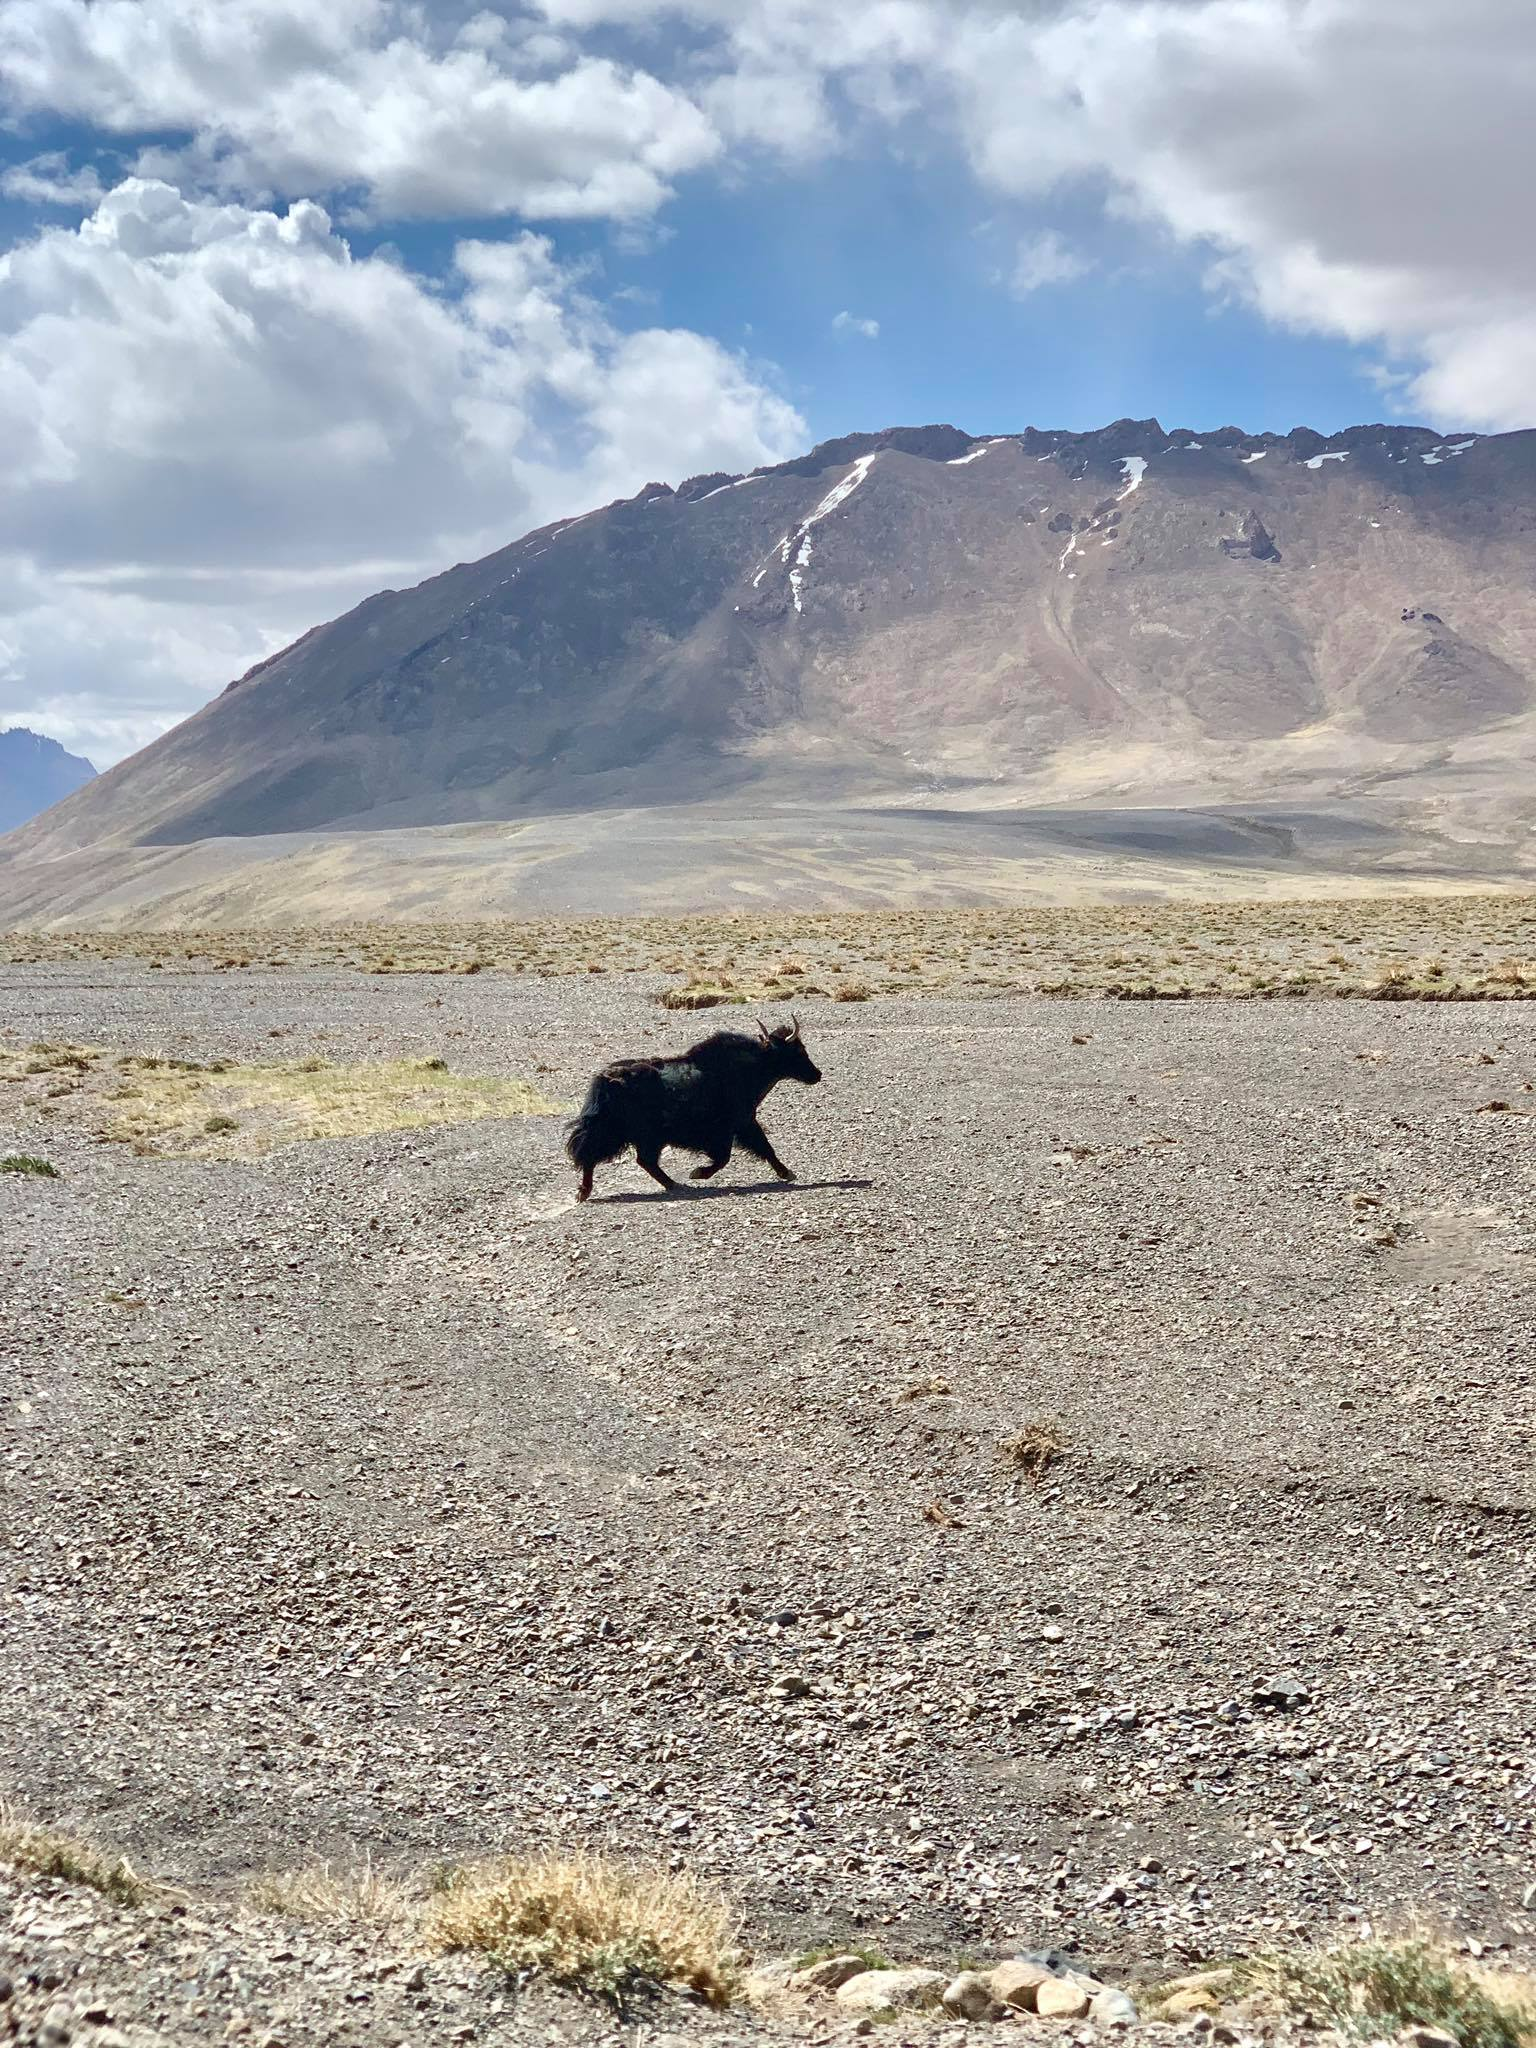 Kach Solo Travels in 2019 Our unexpected last stop during our Pamir Highway Roadtrip4.jpg